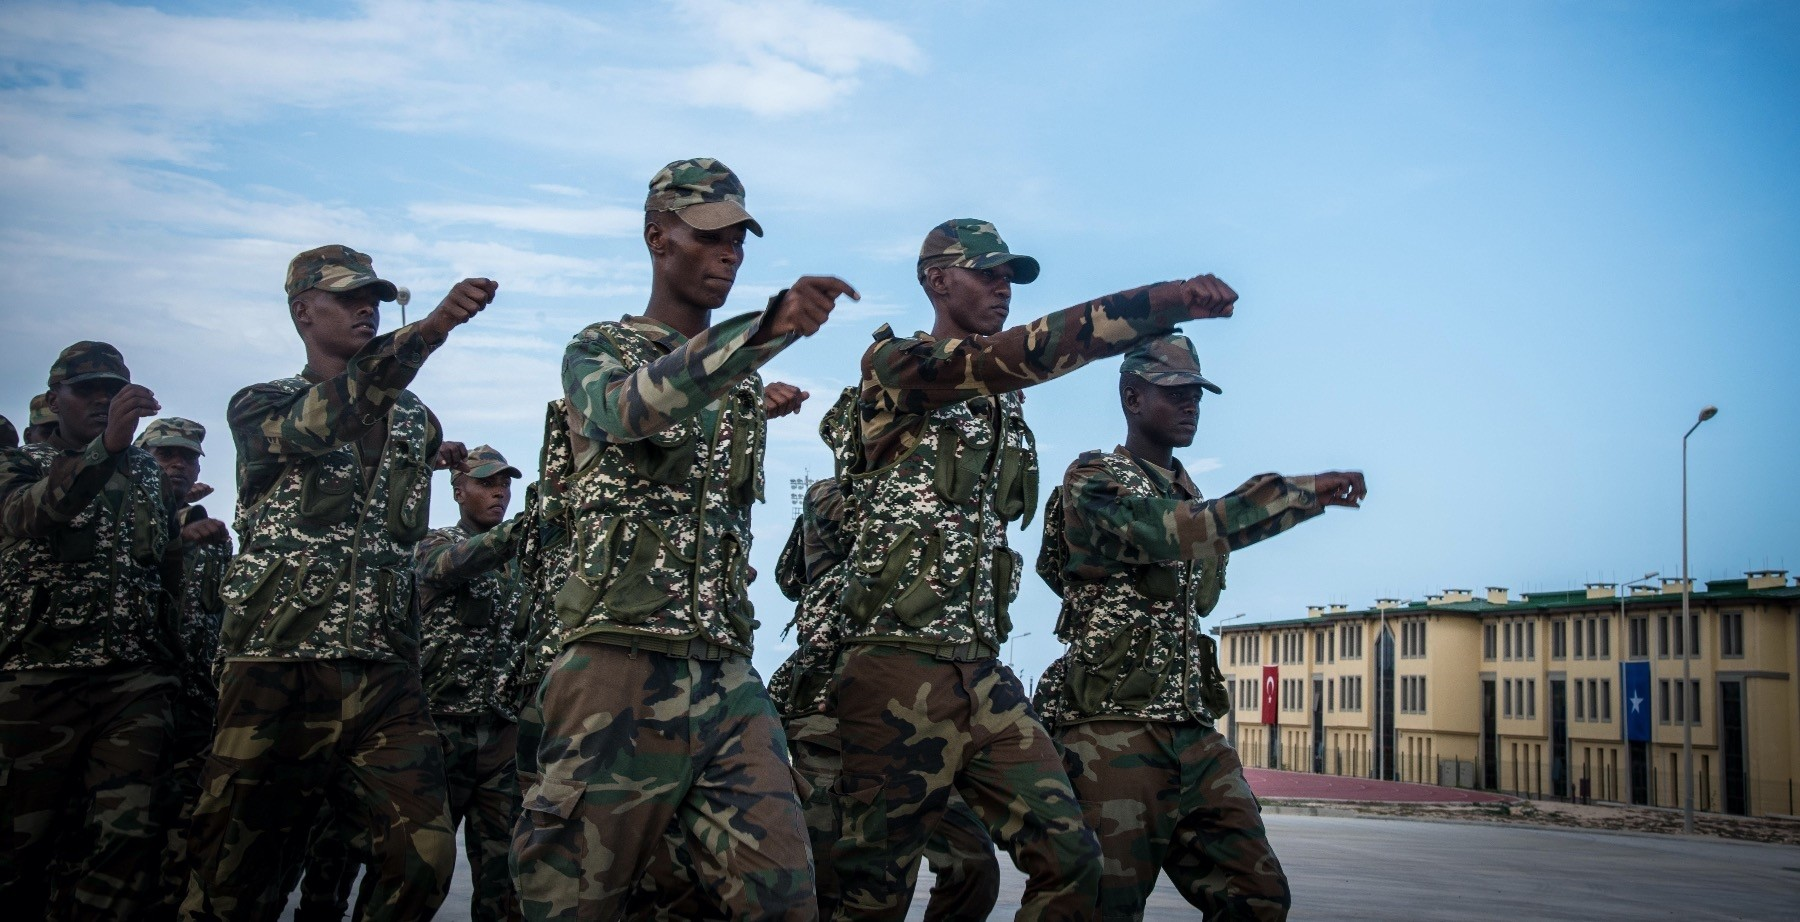 Somali soldiers march during military training.